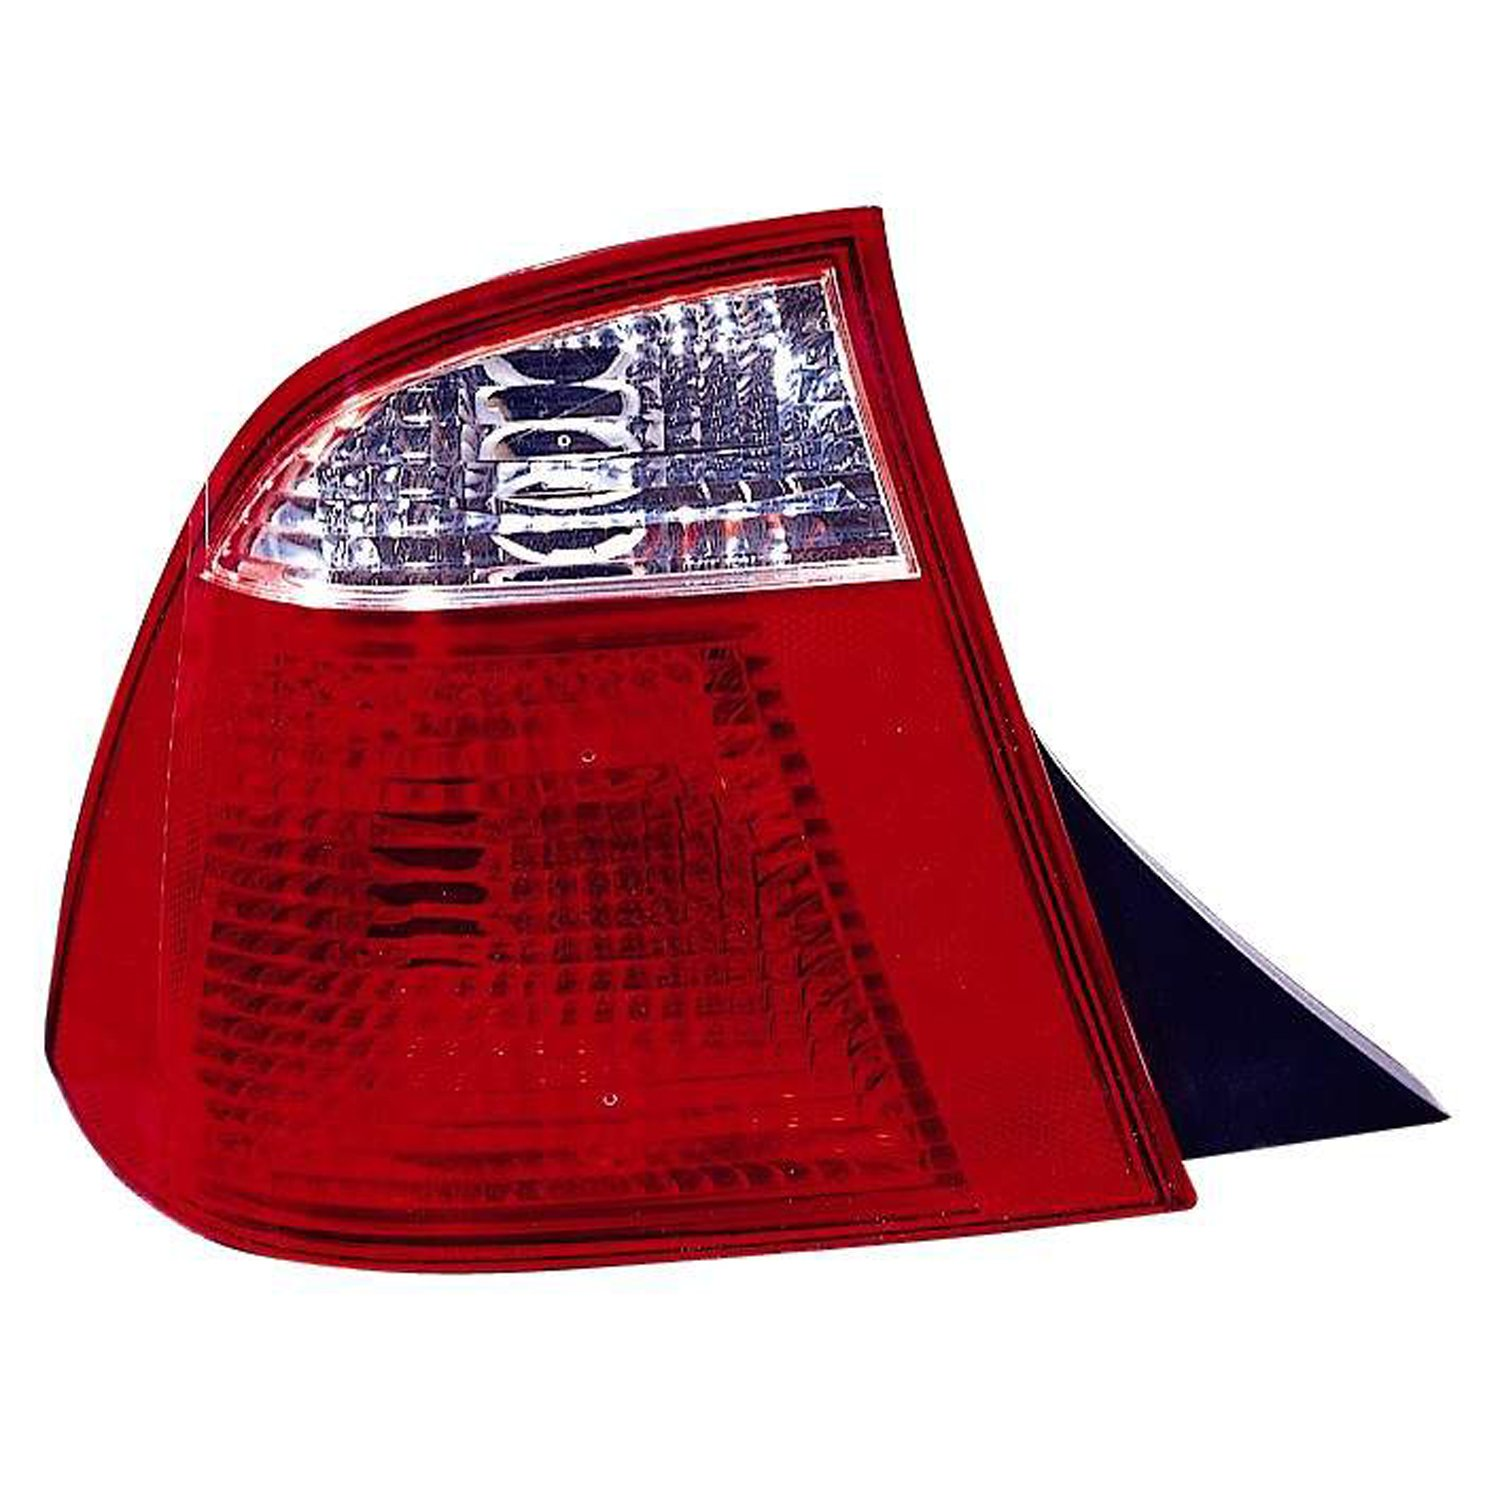 OE Replacement Tail Light FORD FOCUS 2005-2007 Partslink FO2800188 Multiple Manufacturers FO2800188C